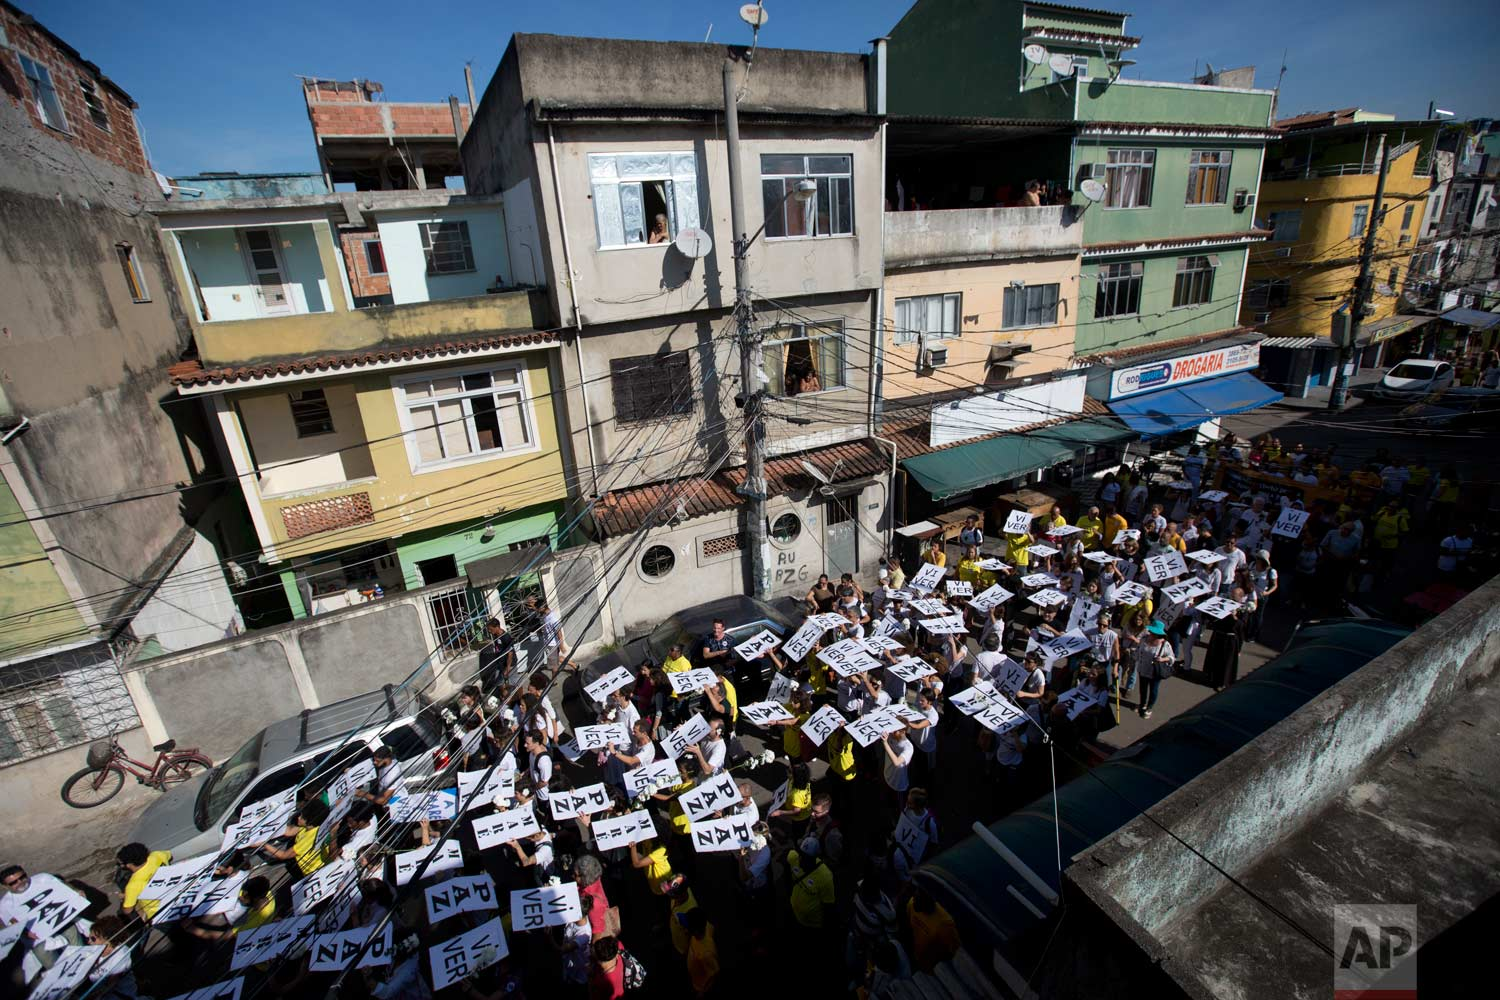 In this May 24, 2017 photo, residents and activists march demanding an end to the gun battles between police and gangs that put residents in the crossfire, in the Mare complex of slums, in Rio de Janeiro, Brazil. With an average of 15 shootings a day, gunfire is often heard across the city that hosted the Summer Olympic Games just a year ago. (AP Photo/Silvia Izquierdo)